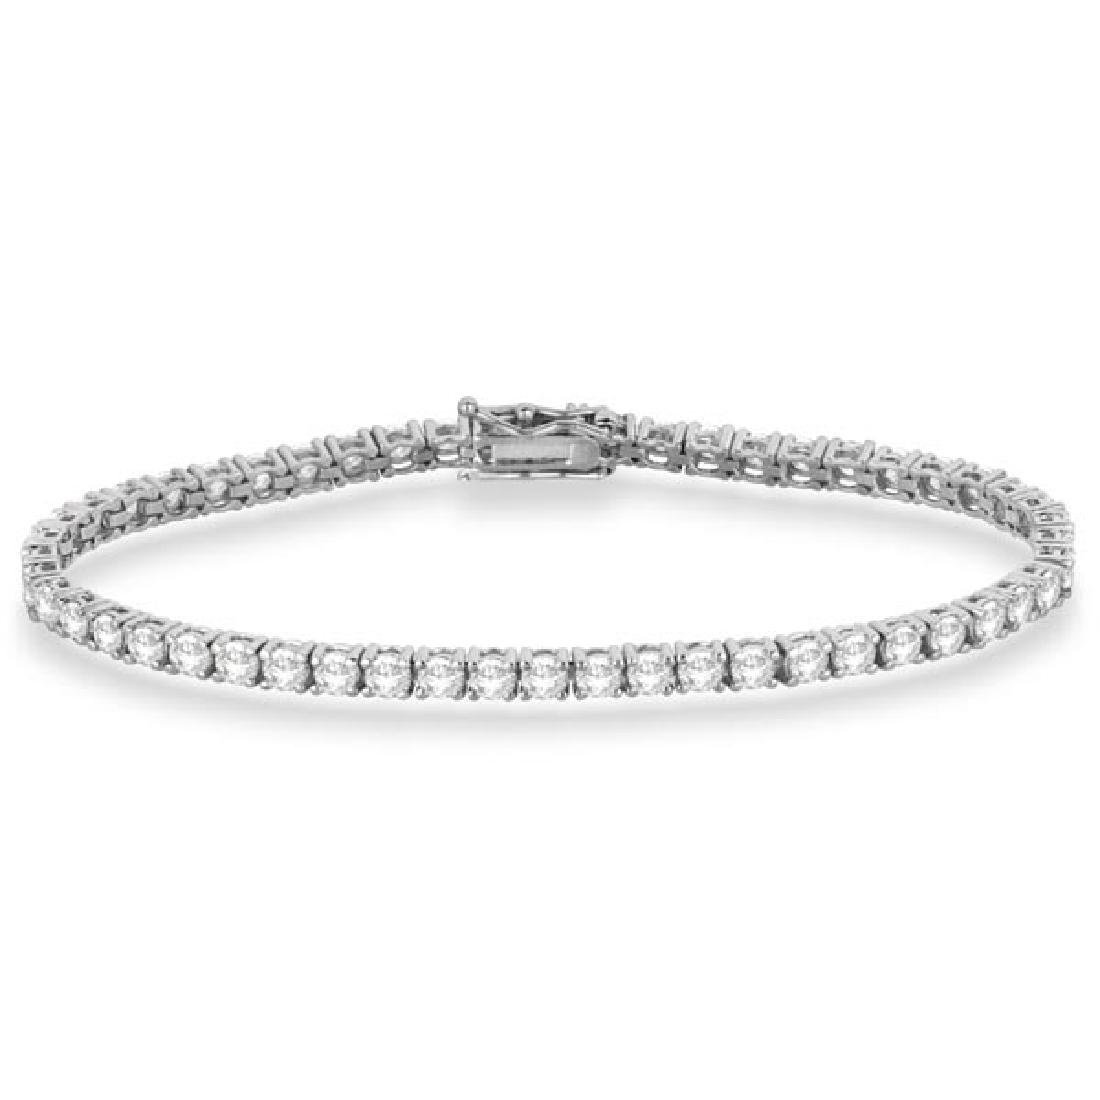 Eternity Diamond Tennis Bracelet 14k White Gold (7.08ct